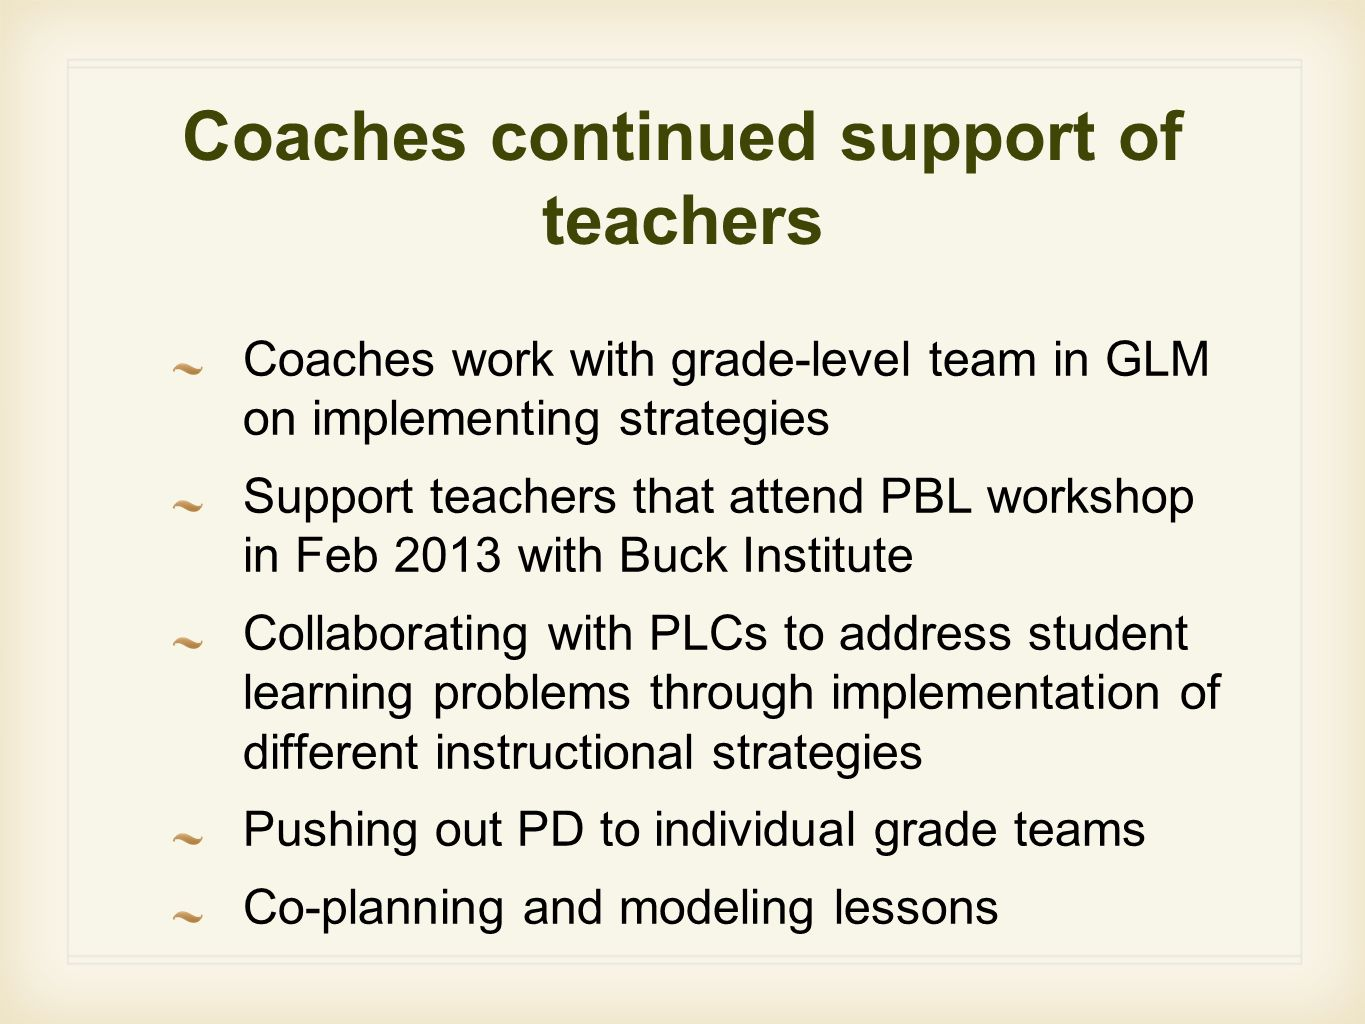 Coaches continued support of teachers